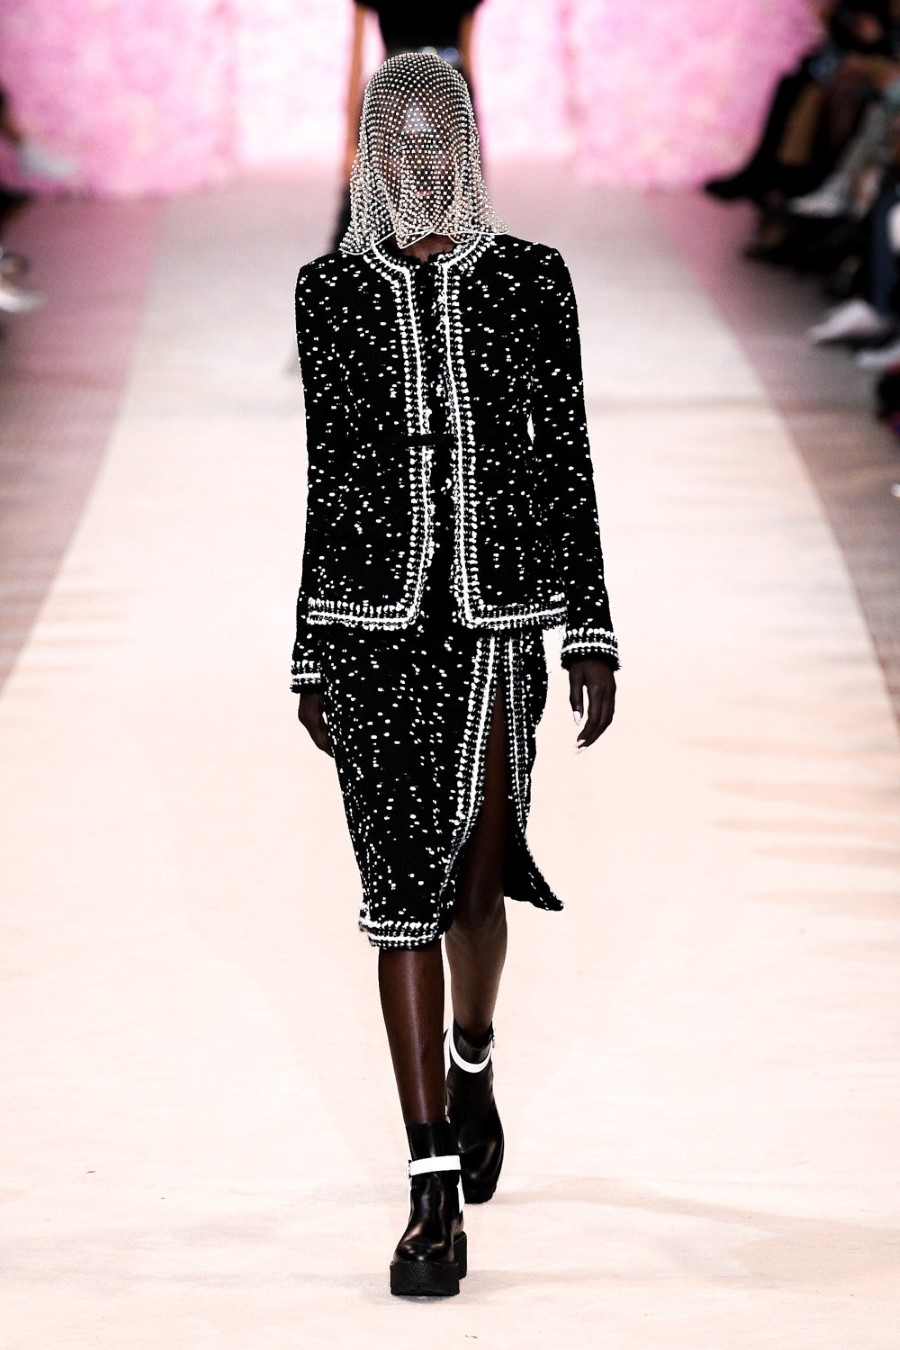 Giambattista Valli - Fall/Winter 2020 - Paris Fashion Week